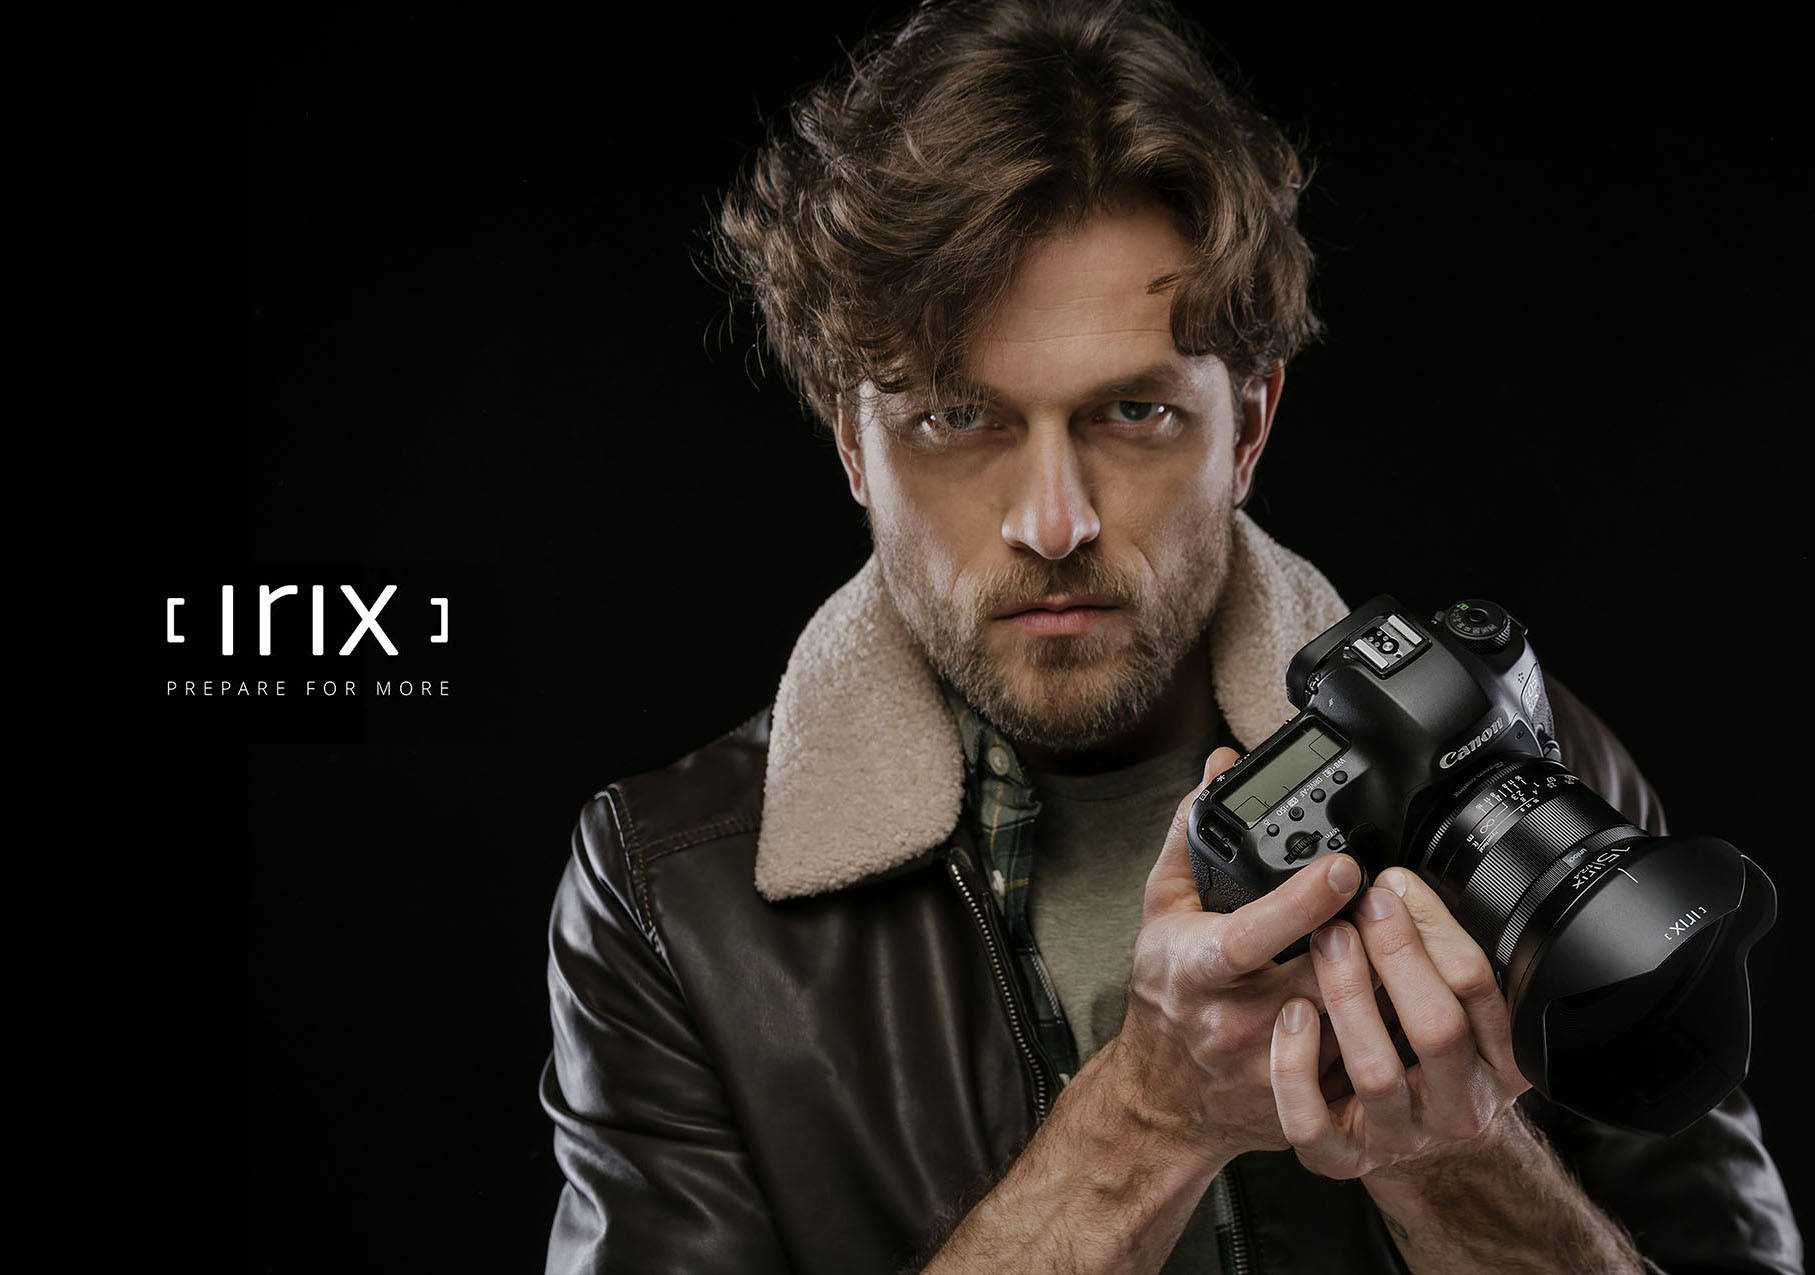 Individual Irix support program with our best photographers